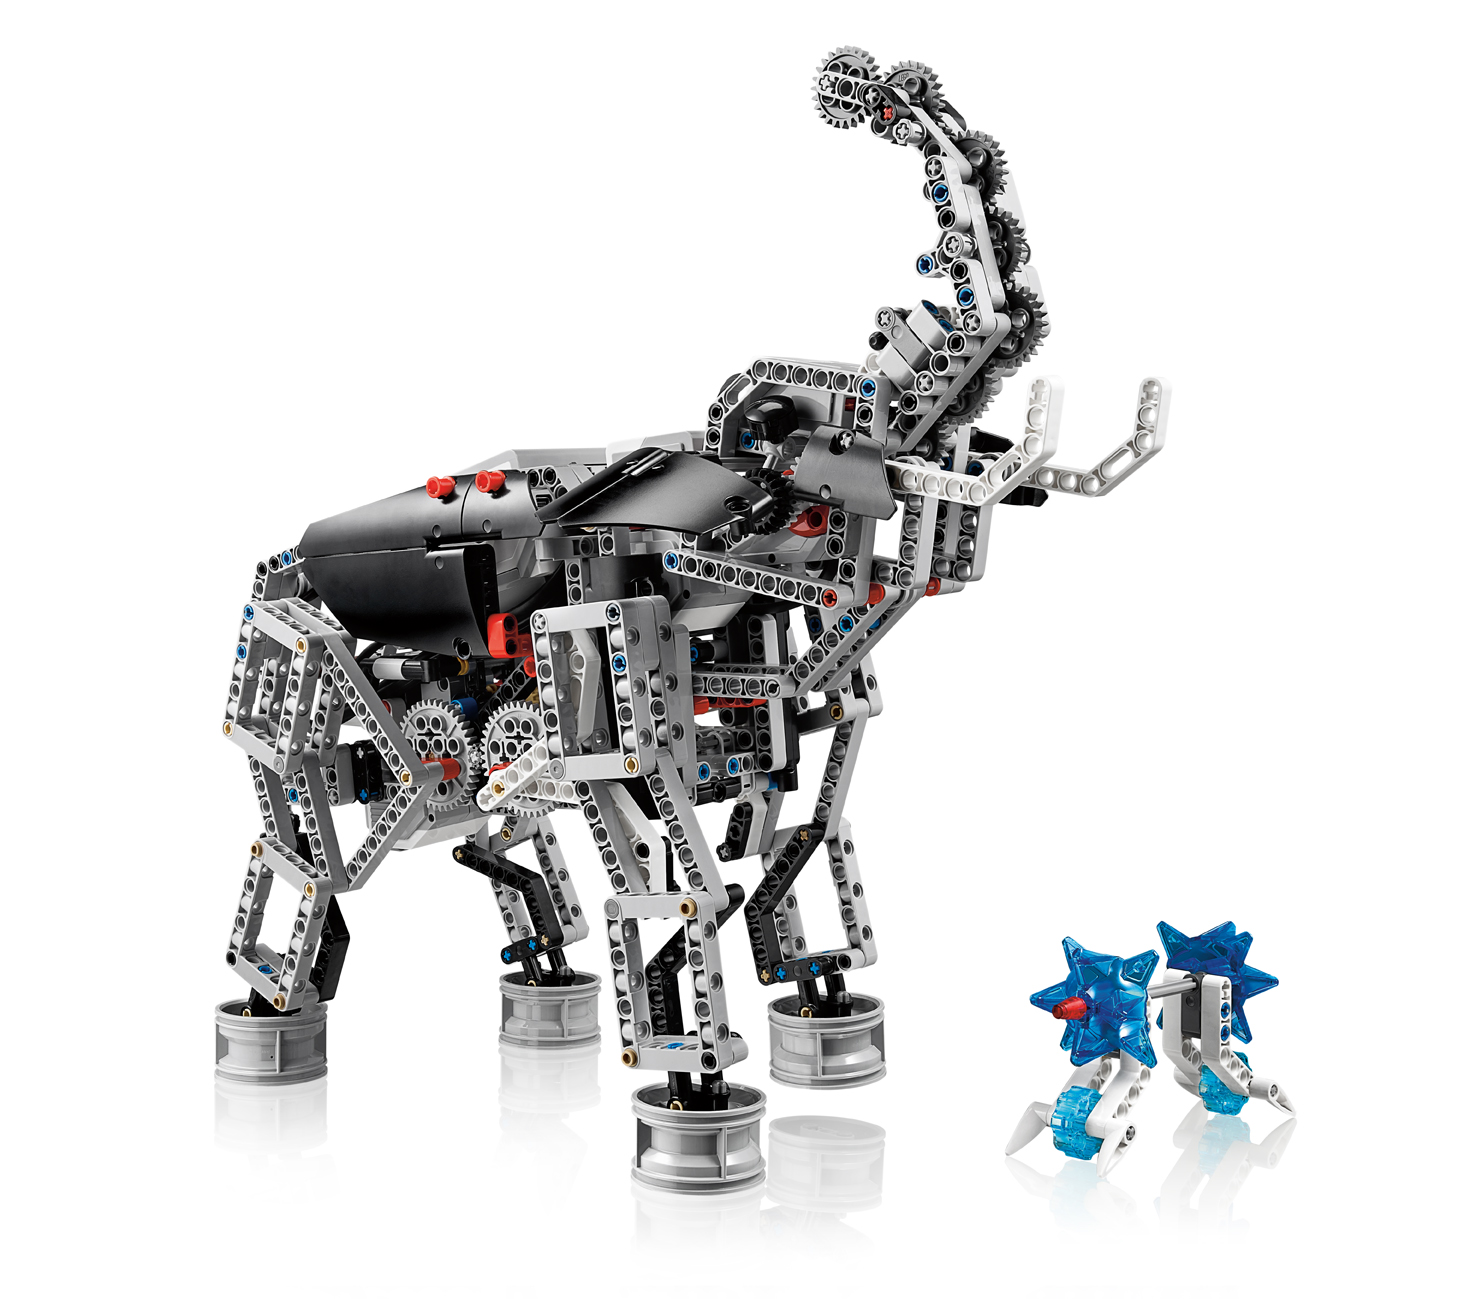 Ресурсный набор Lego Mindstorms Education EV3-1